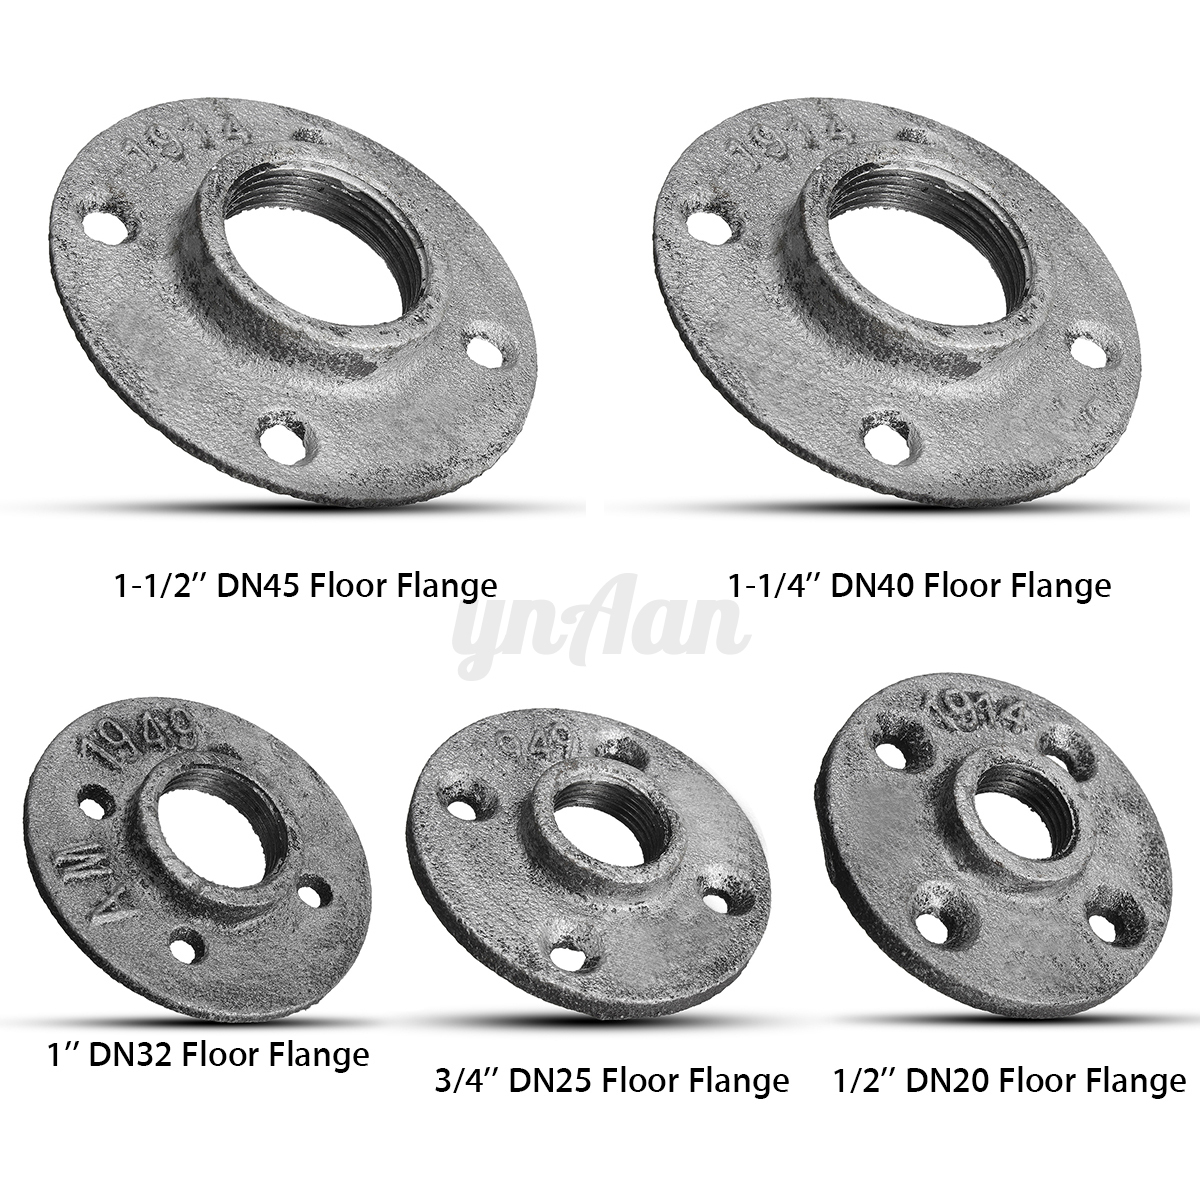 Silver cast iron steel tube pipe floor flange 1 1 2 39 39 1 1 for 1 5 inch floor flange